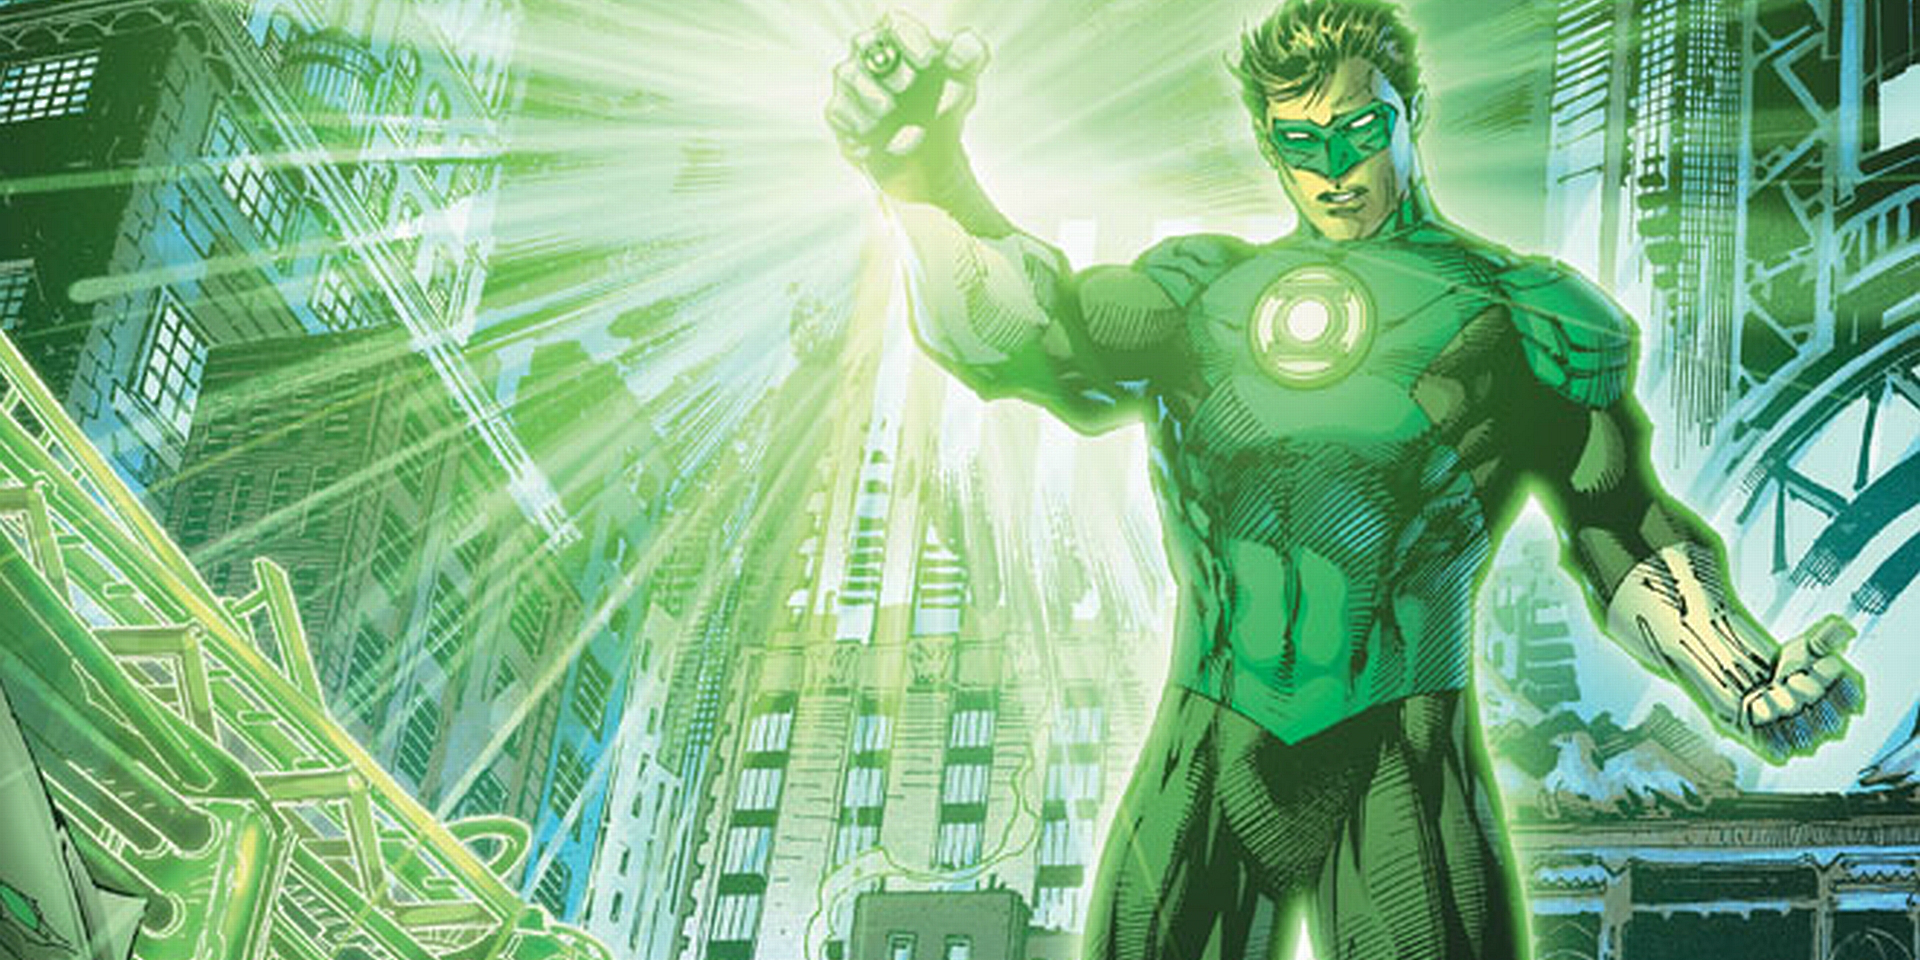 the 15 most powerful members of the justice league ranked